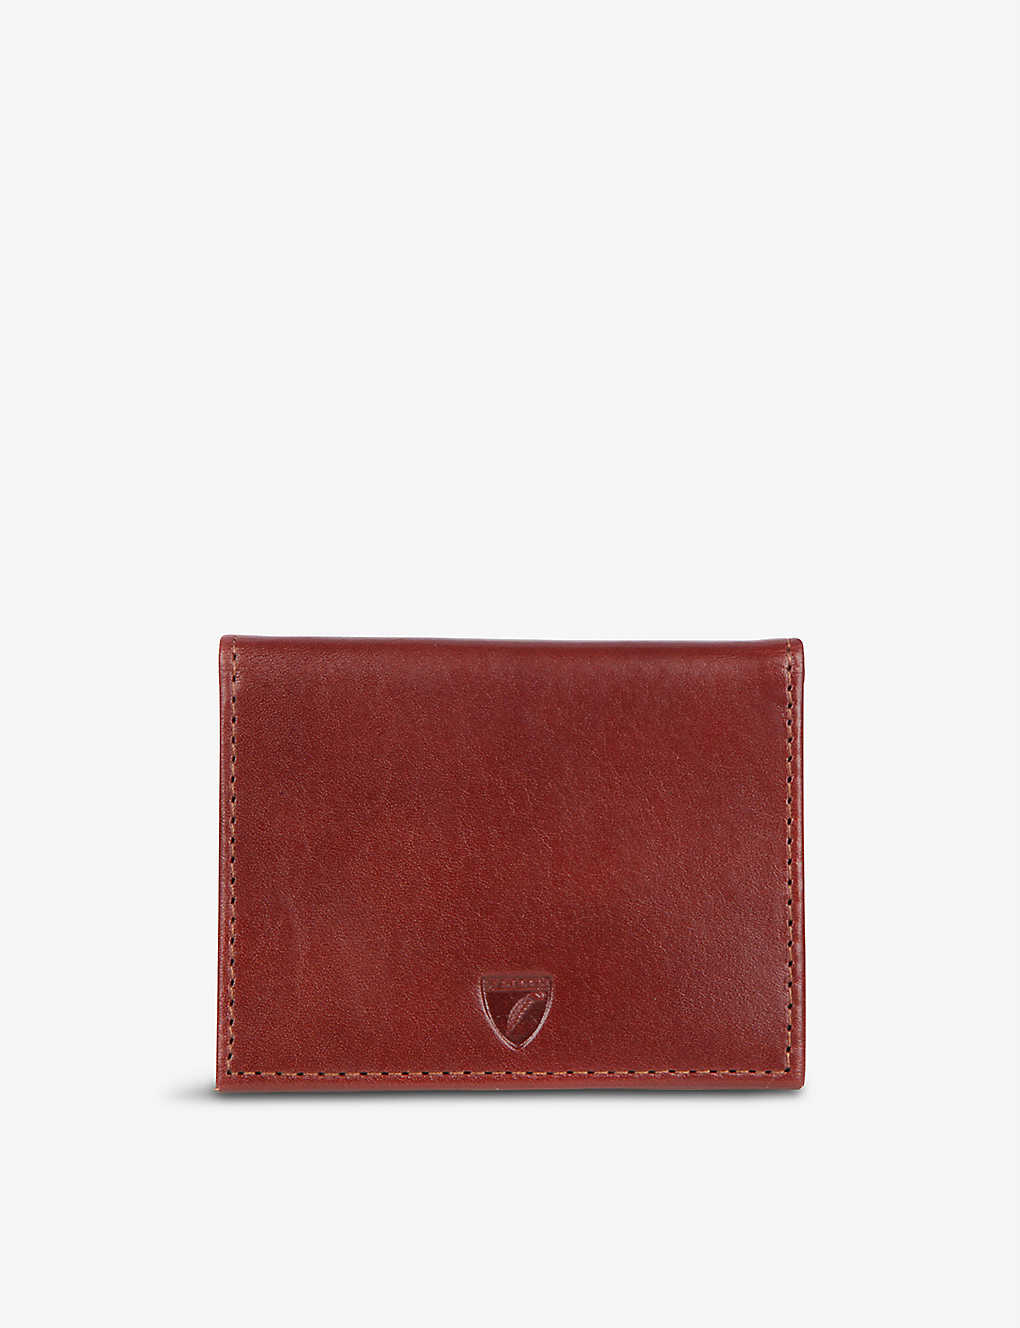 ASPINAL OF LONDON: ID & Travel leather card case